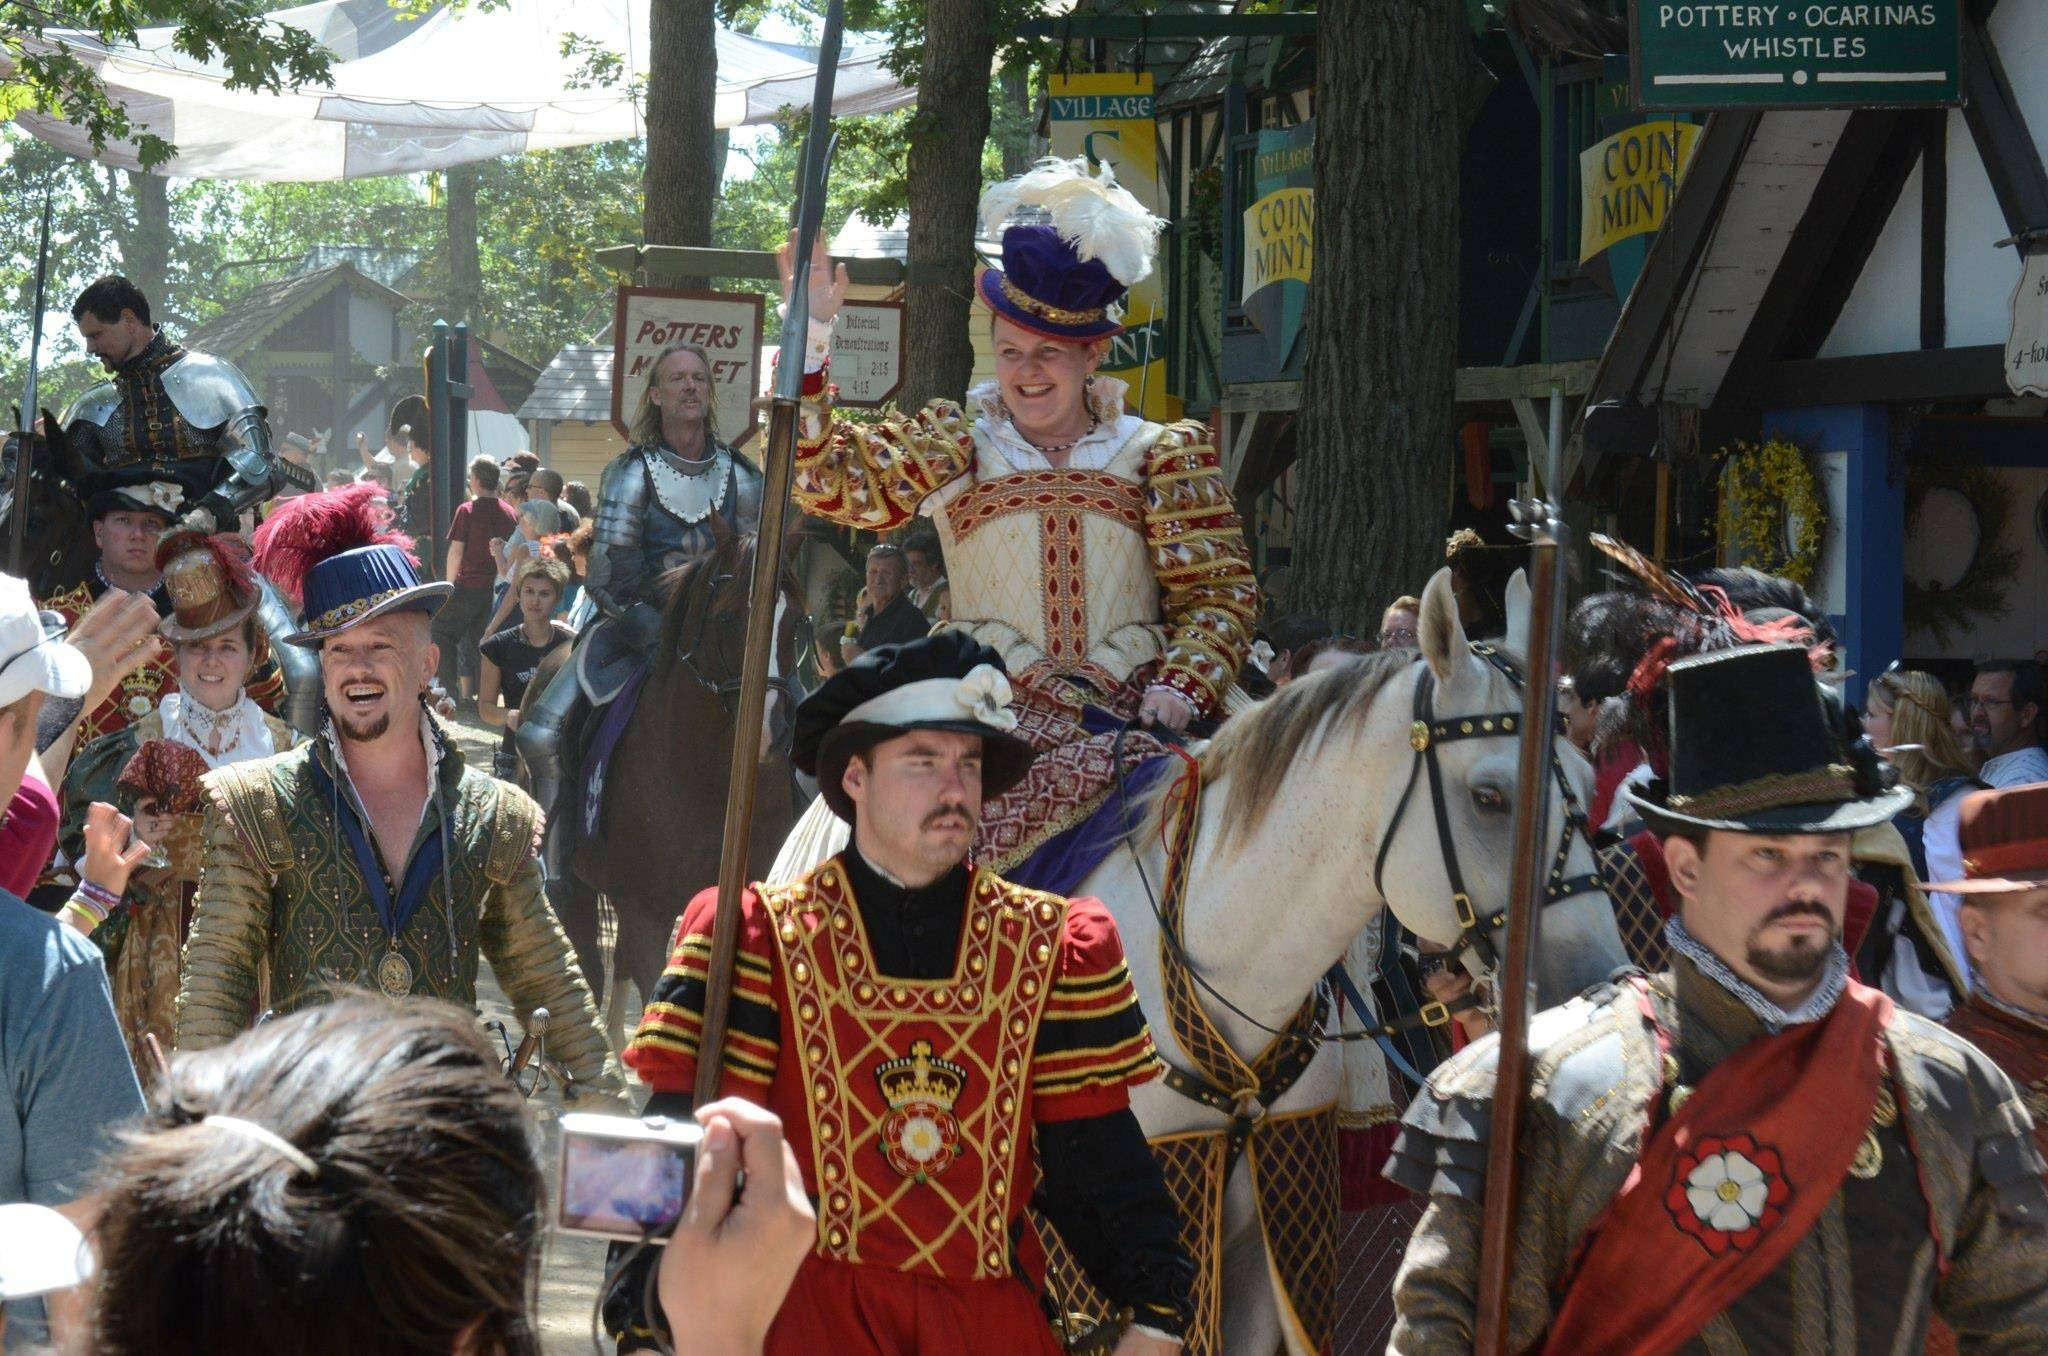 The majesty of the Bristol Renaissance Faire in Kenosha, Wis., ends for the season on Monday, Sept. 1.